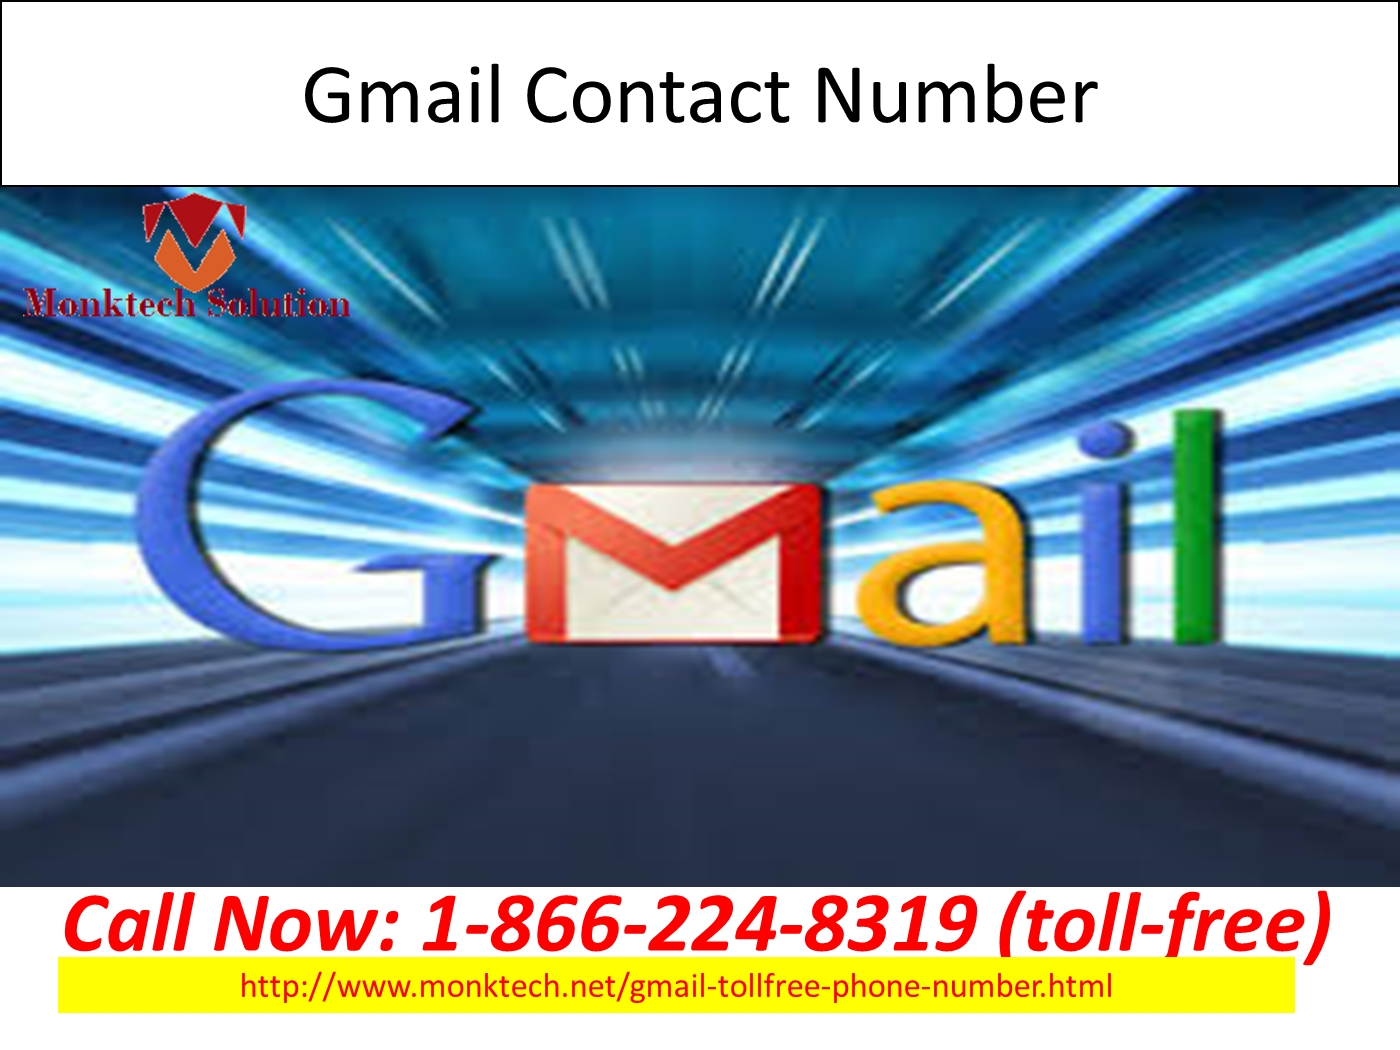 Gmail ppt theme - Gmail Toll Free Number 1 866 224 8319 Toll Free For Change Your Account Theme Powerpoint Presentation Ppt